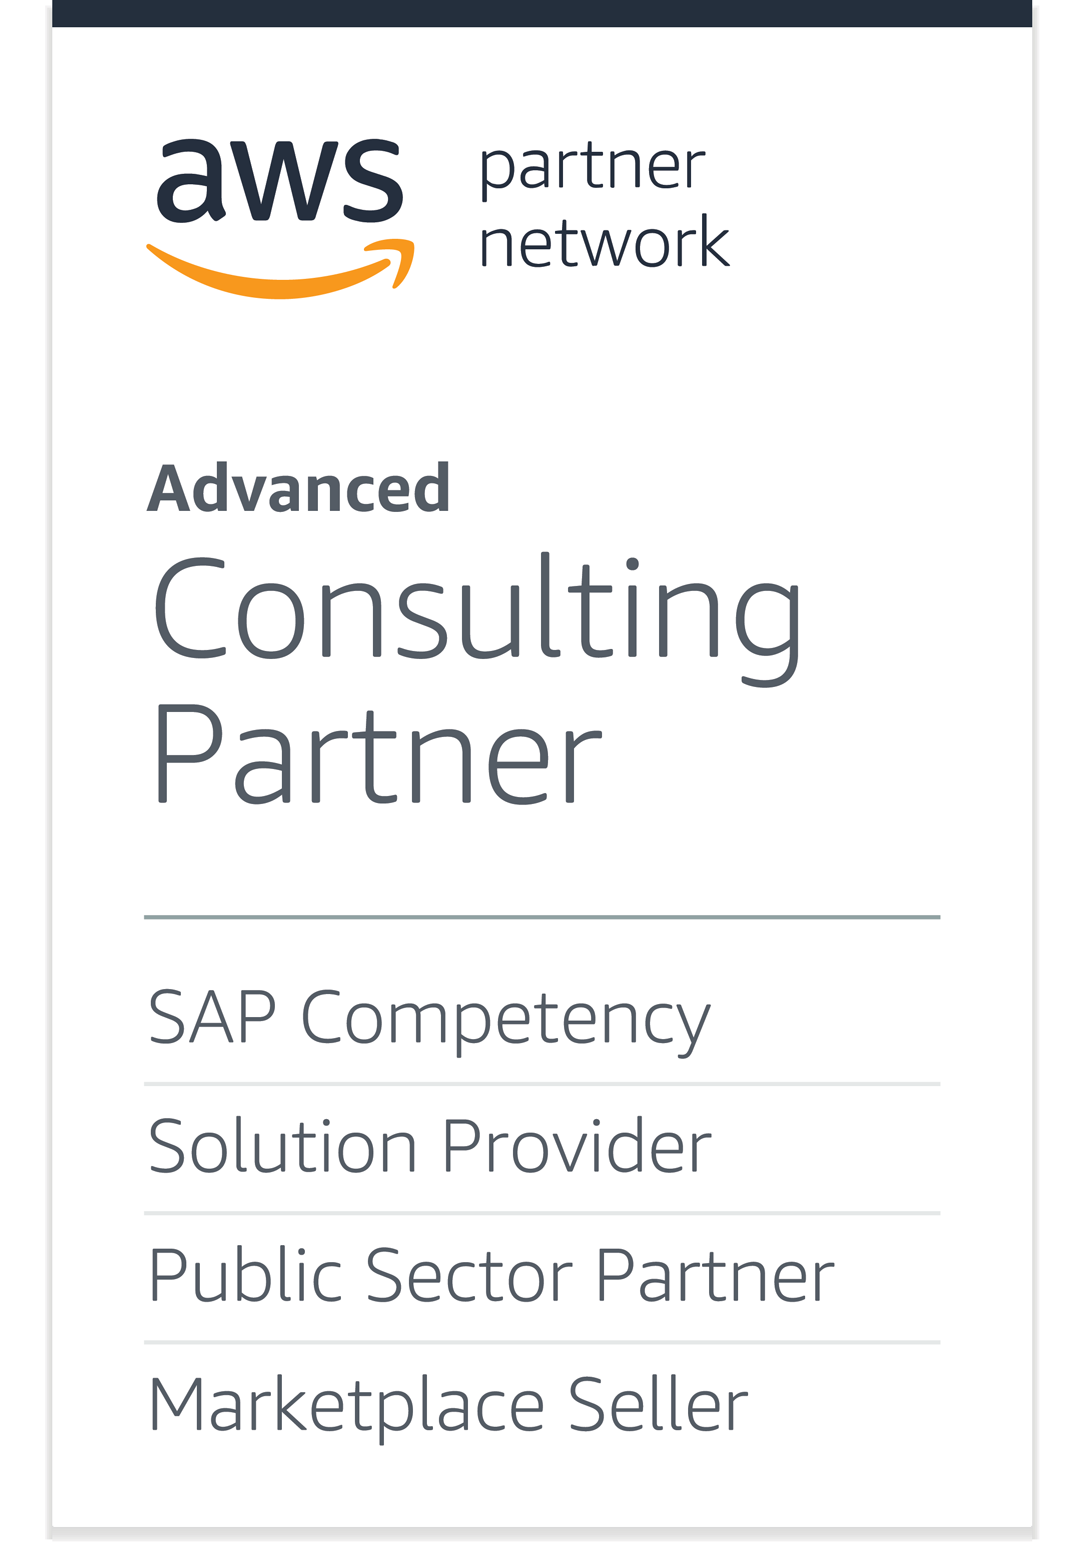 AWS Advanced Consulting Partner logo